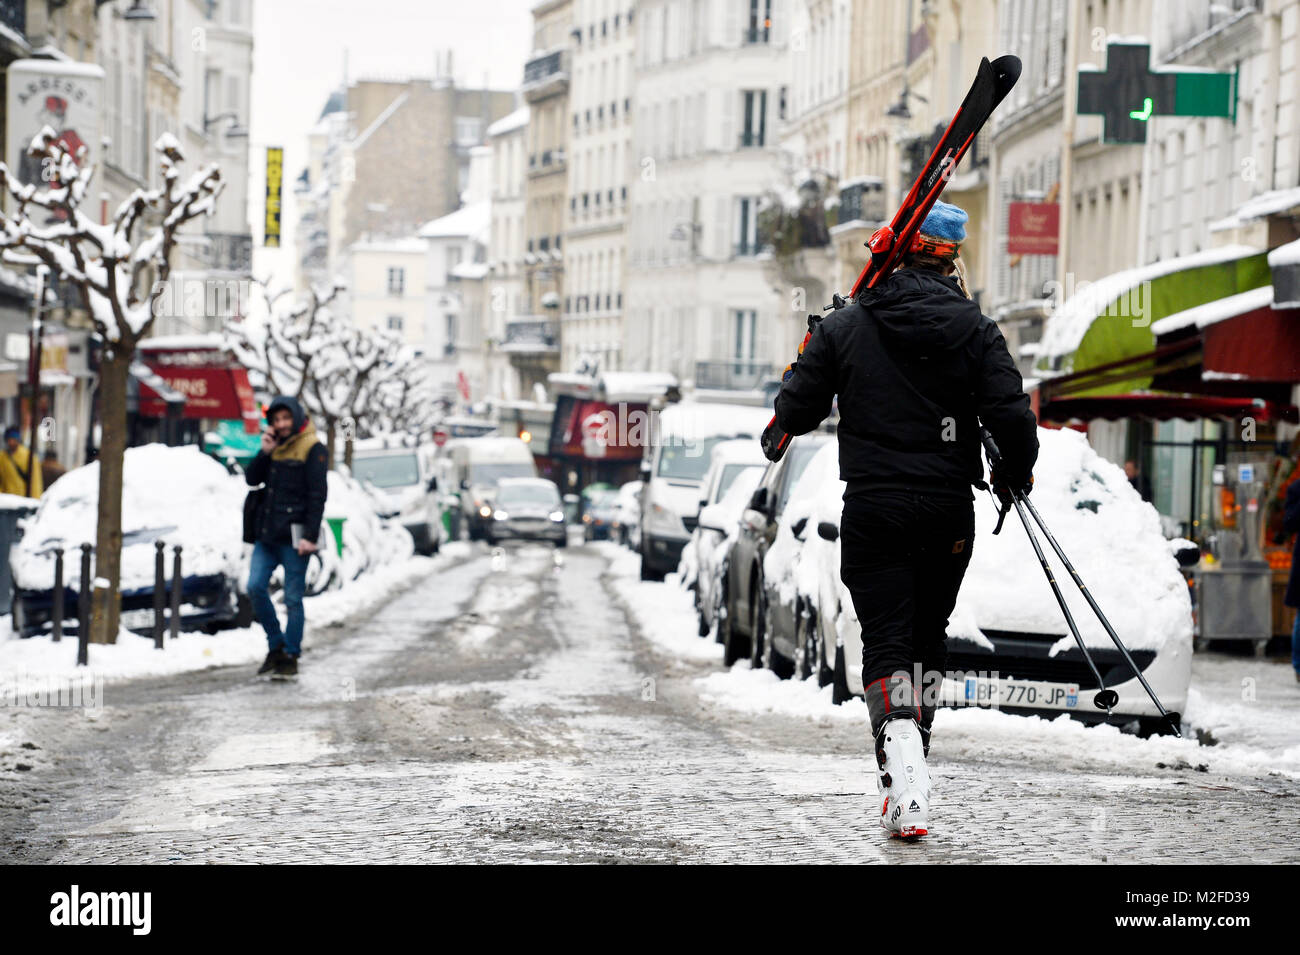 Paris, France. 7th Feb, 2018. Montmartre area under heavy snow on 7th February 2018 Credit: Frédéric VIELCANET/Alamy - Stock Image